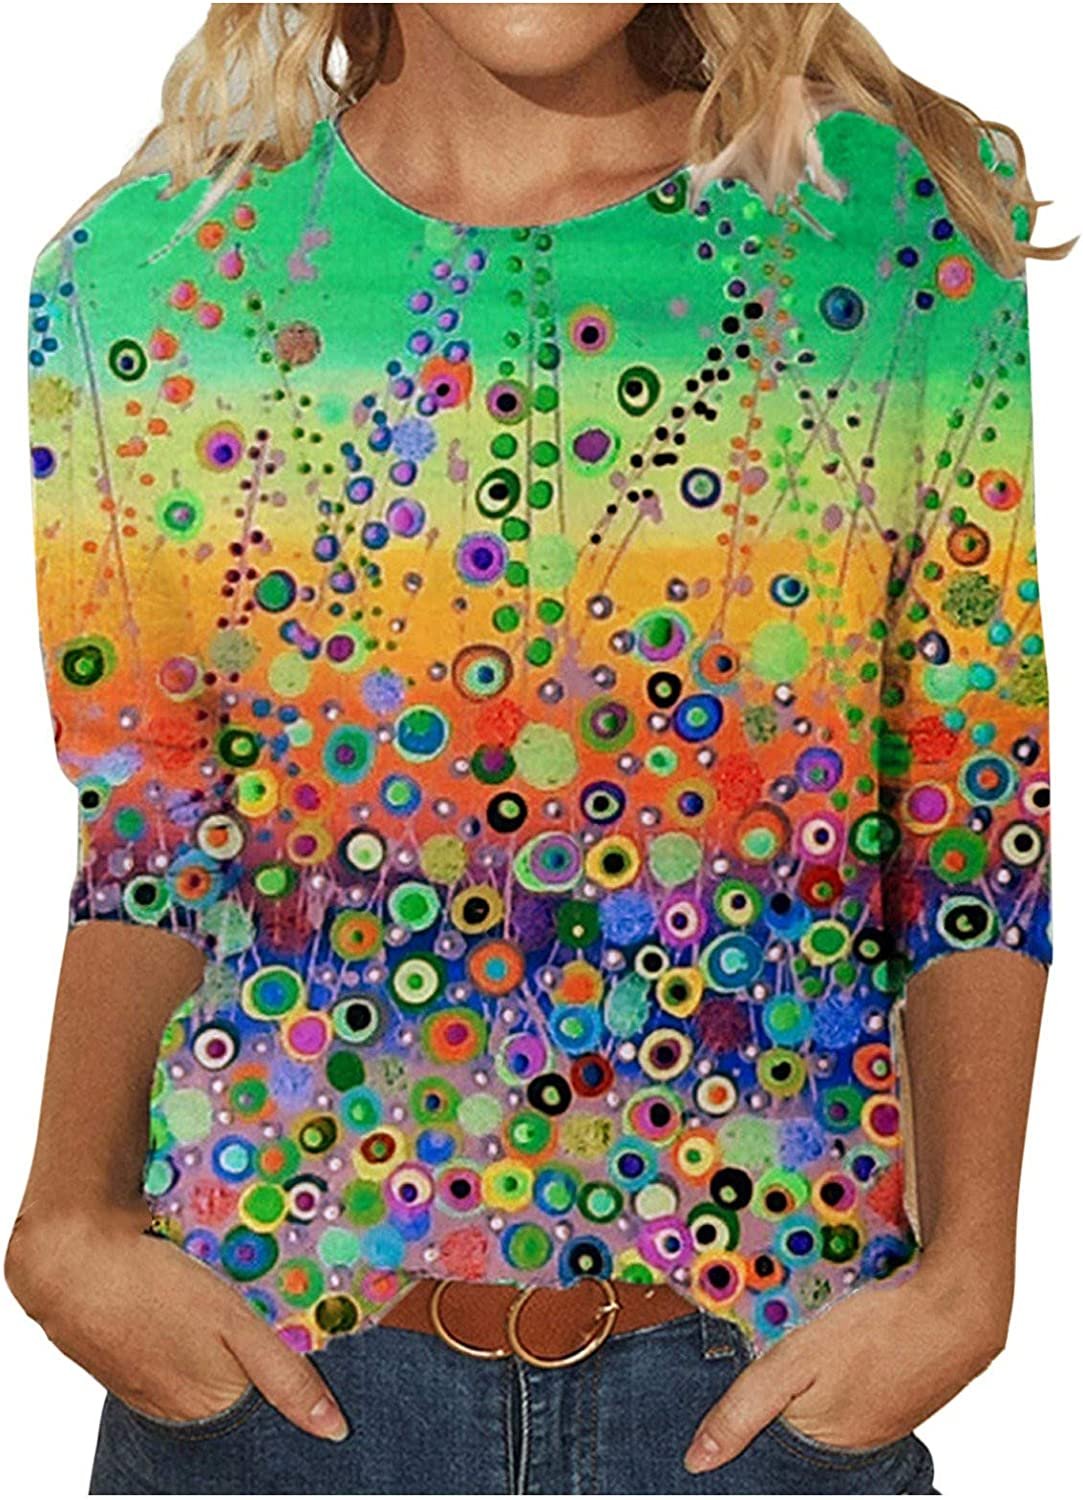 Summer Tops for Women, O-Neck Loose Pullover Comfortable Soft Blouses Tops Casual Colorful Print Tops